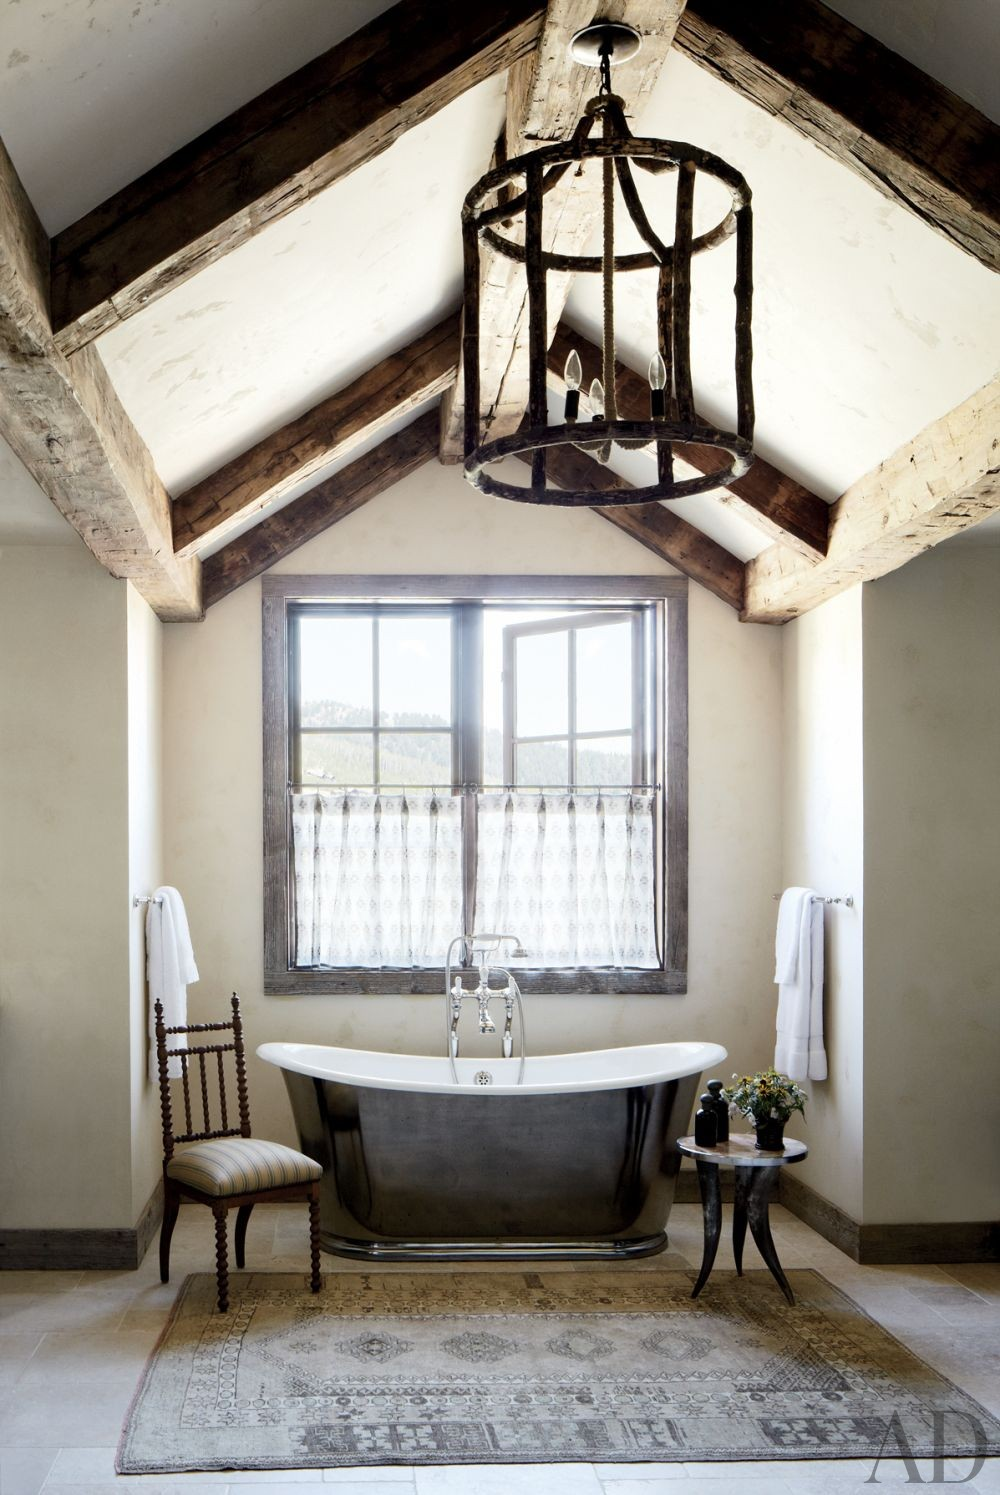 Rustic Living Room By Markham Roberts Inc By: Rustic Bathroom By Markham Roberts Inc. By Architectural